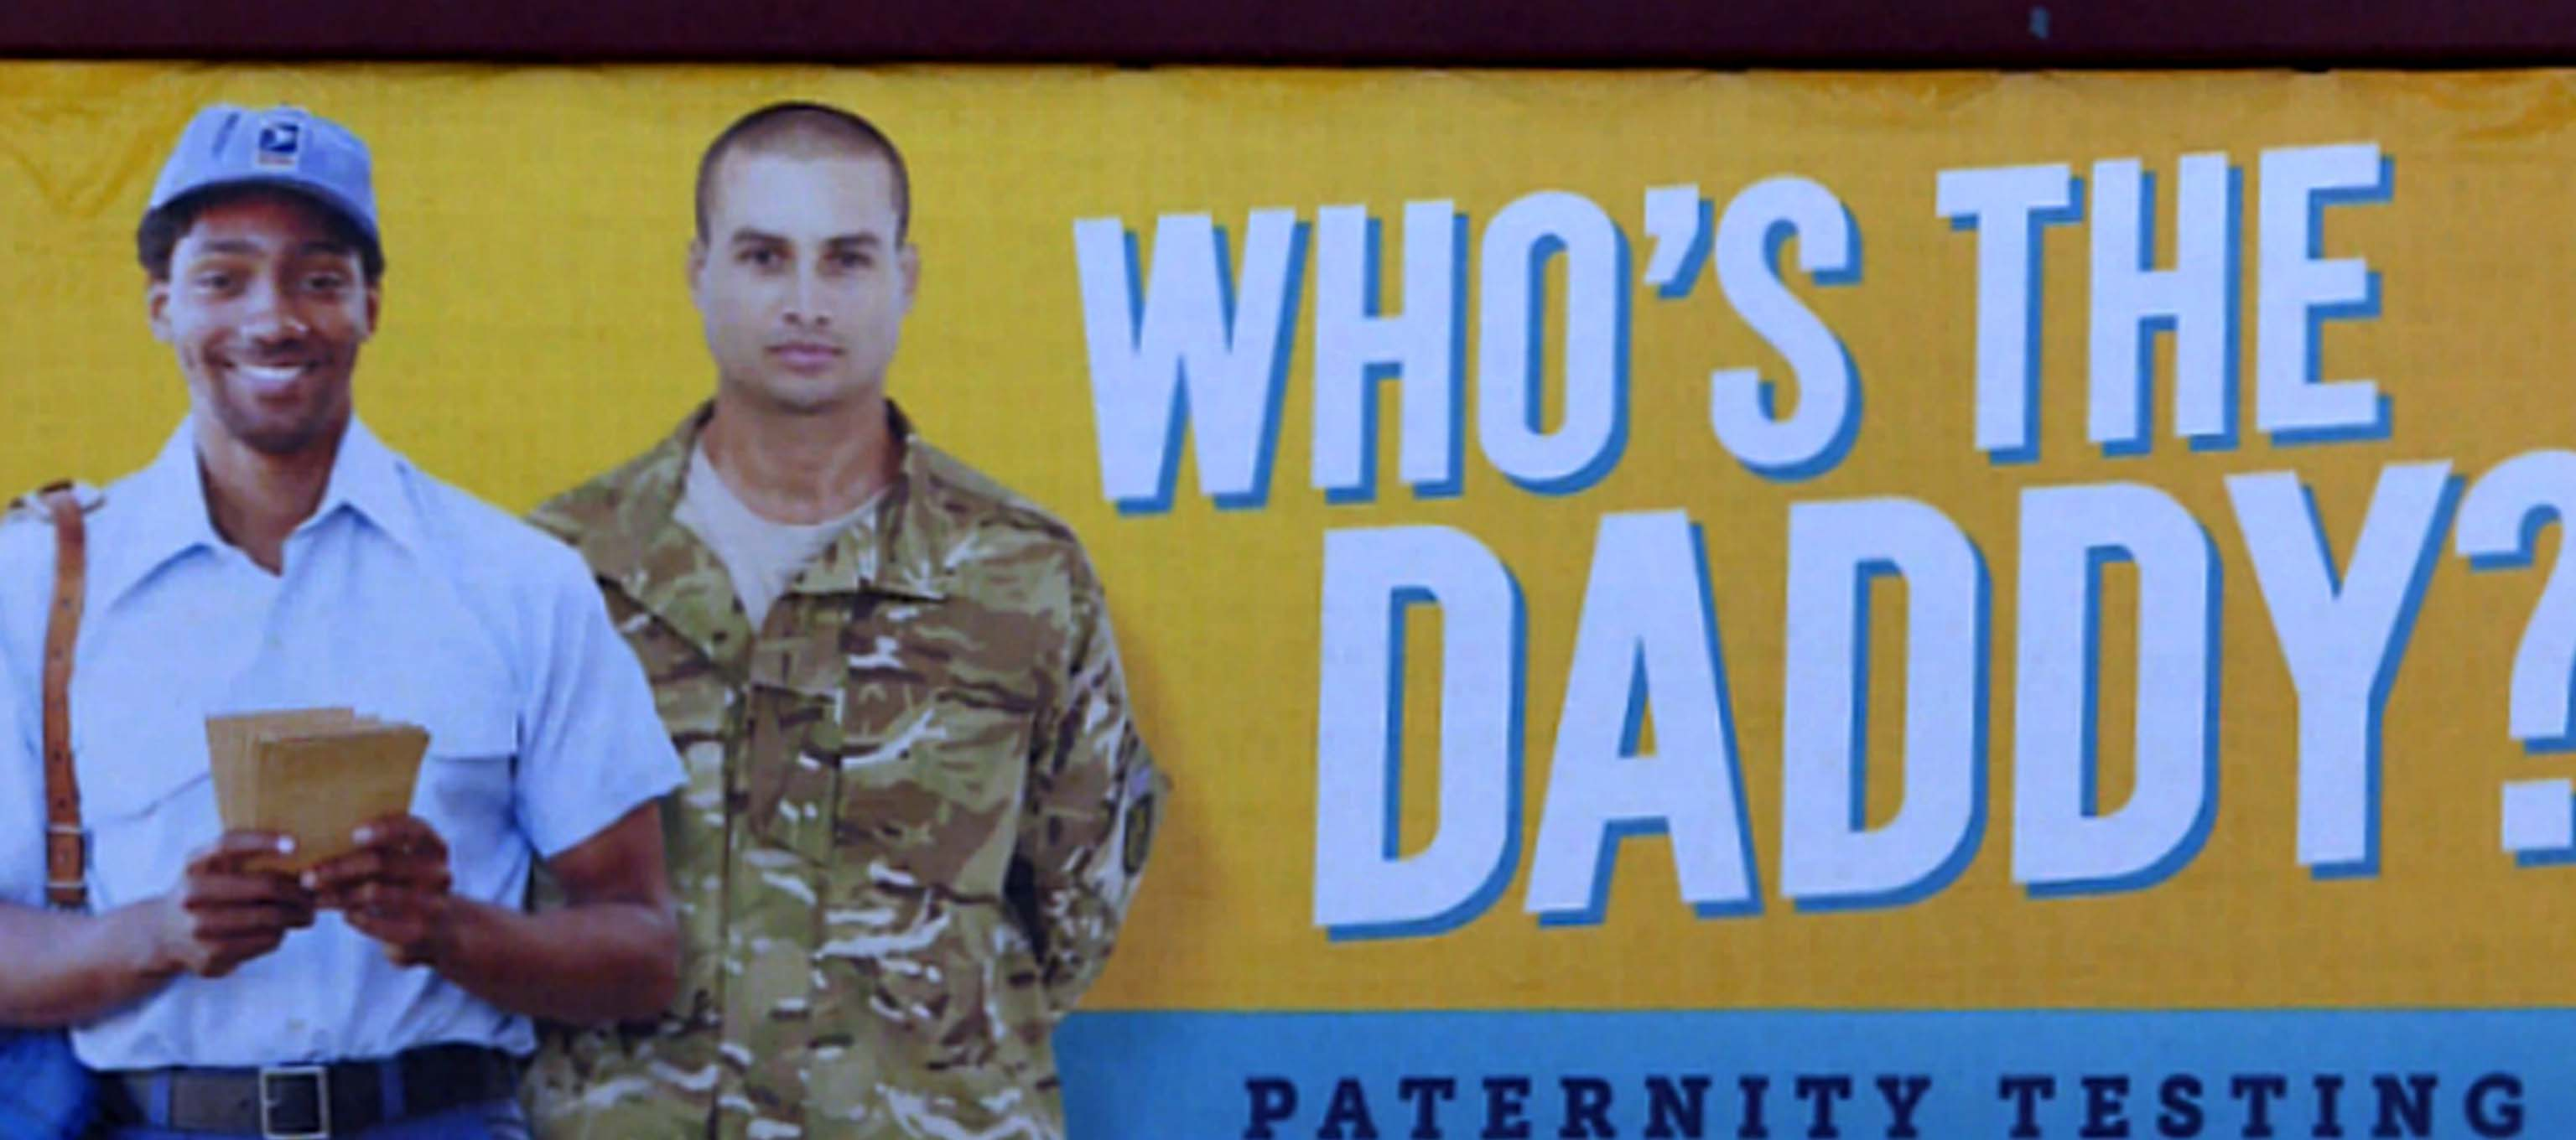 Does this military paternity billboard send the wrong message?